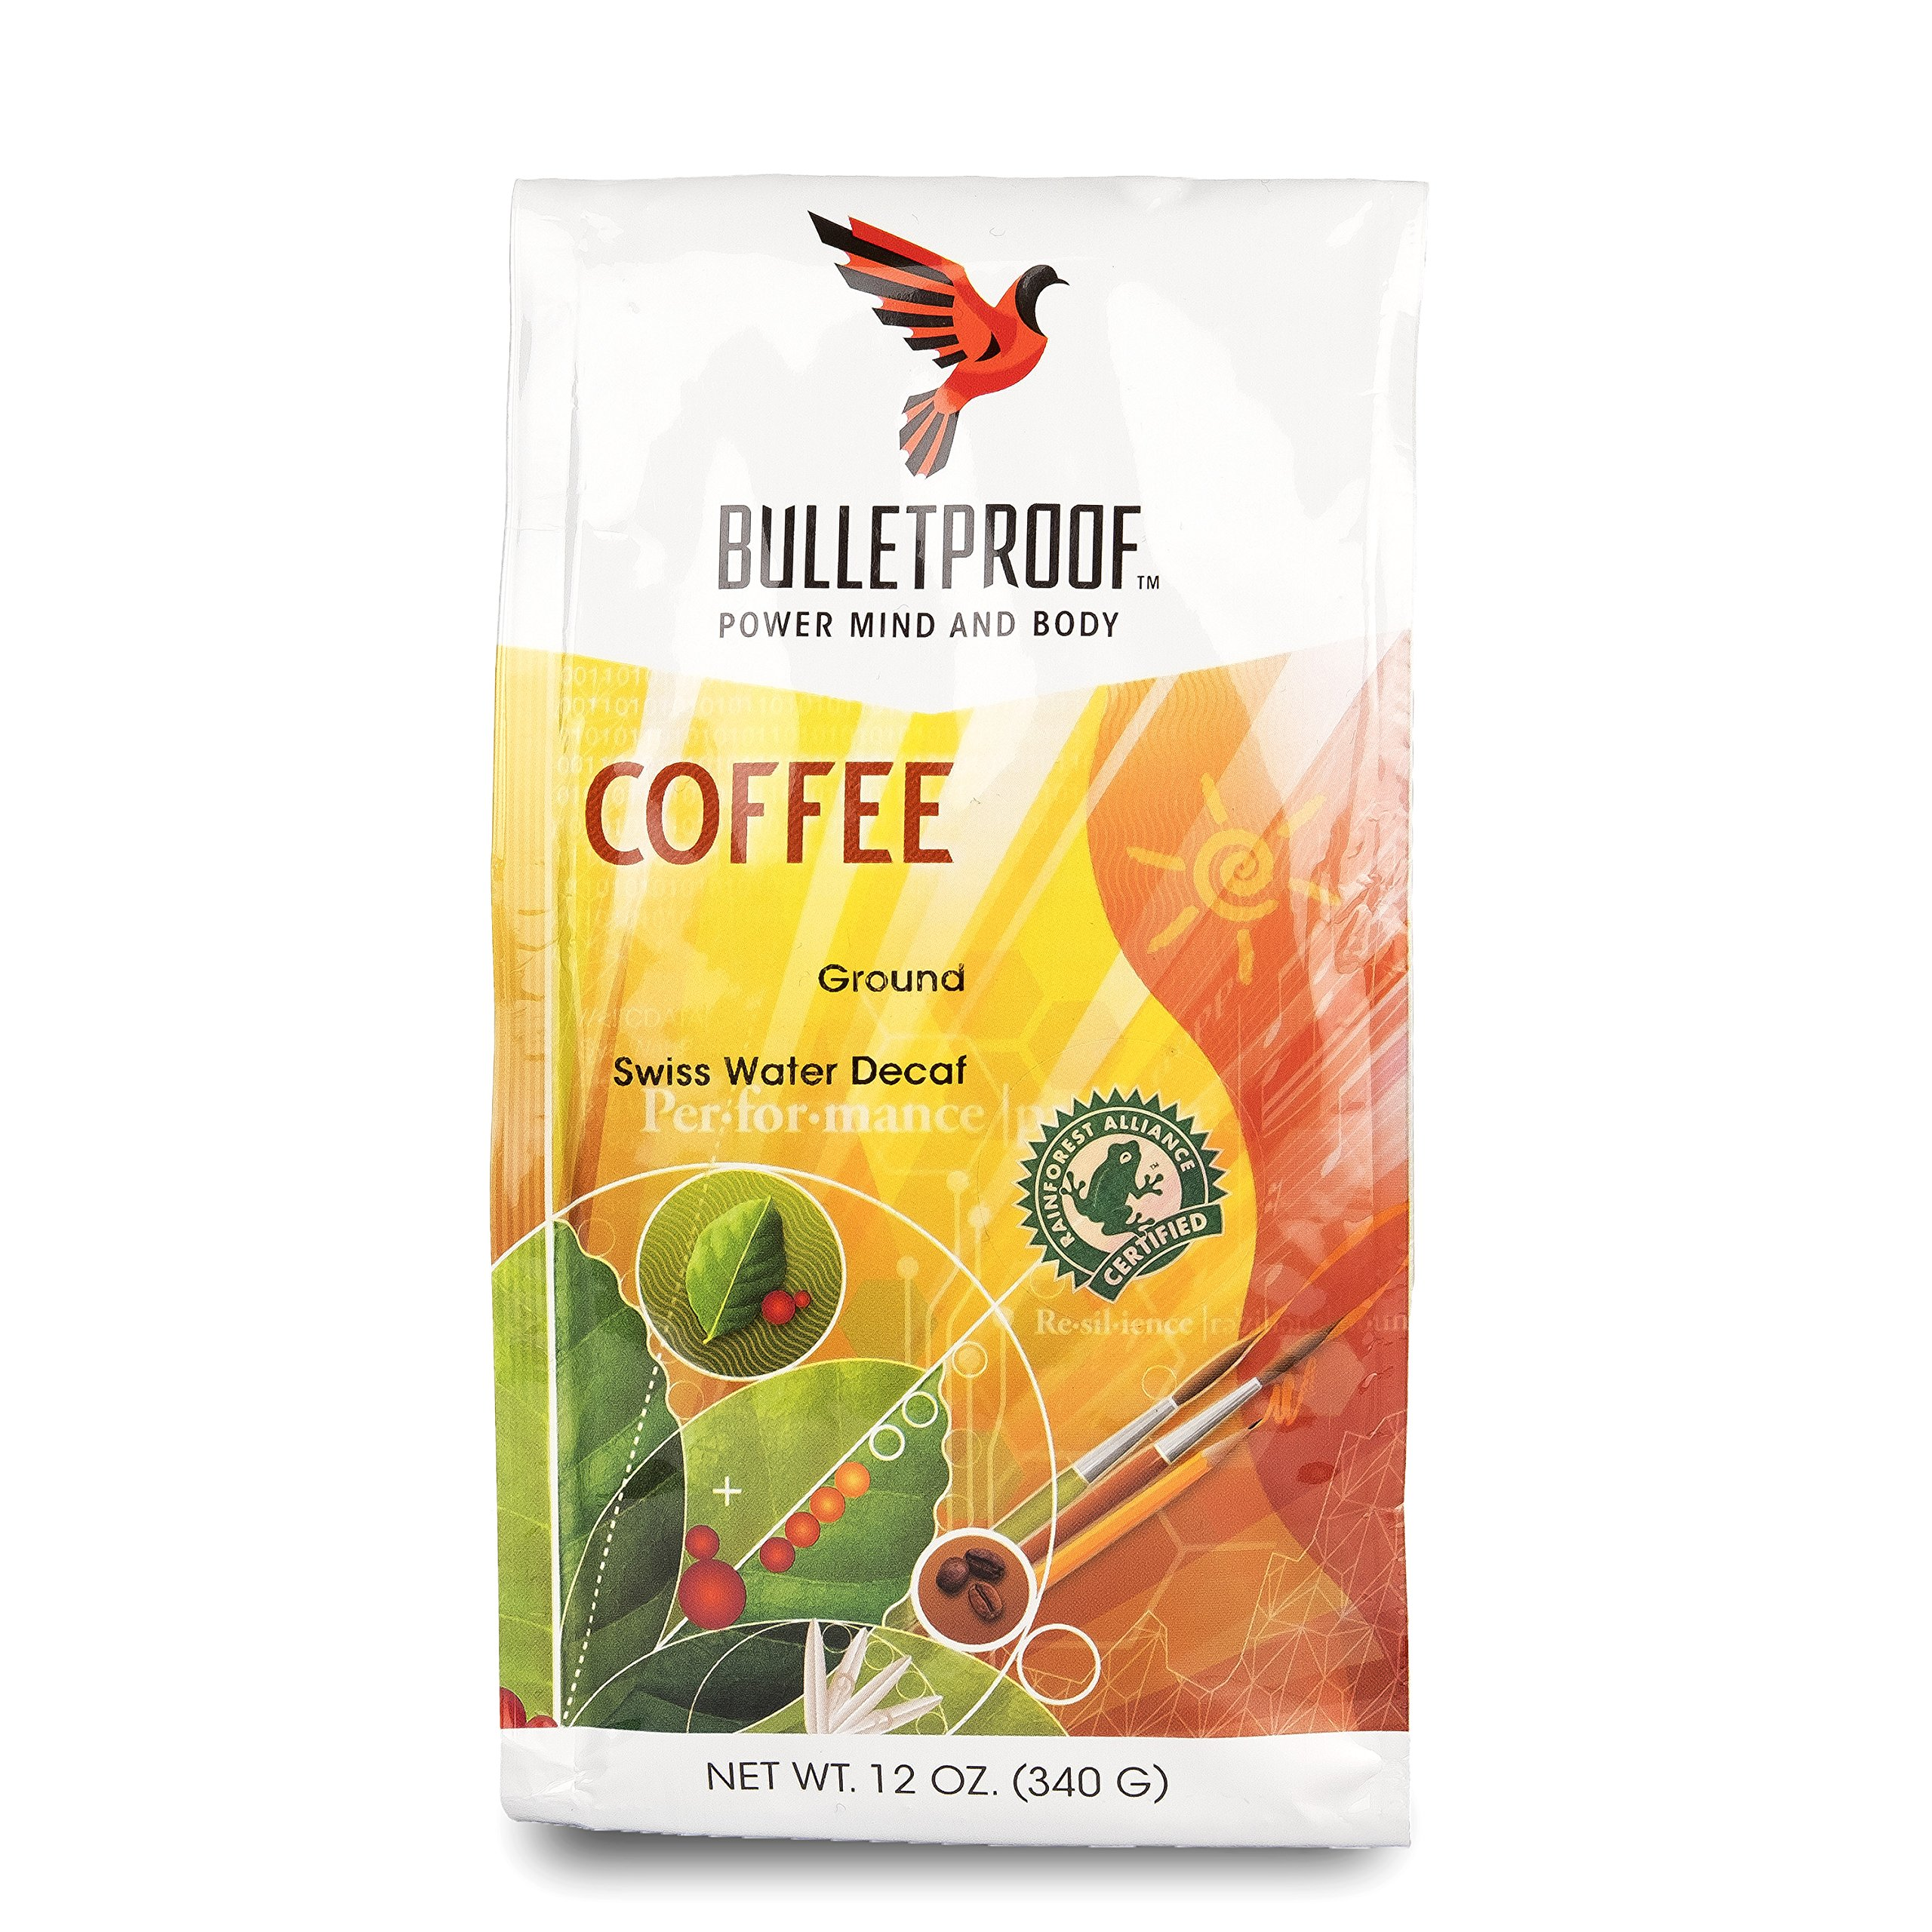 Bulletproof The Original Ground Decaf Coffee, Upgraded Coffee Upgrades Your Day (12 Ounces)